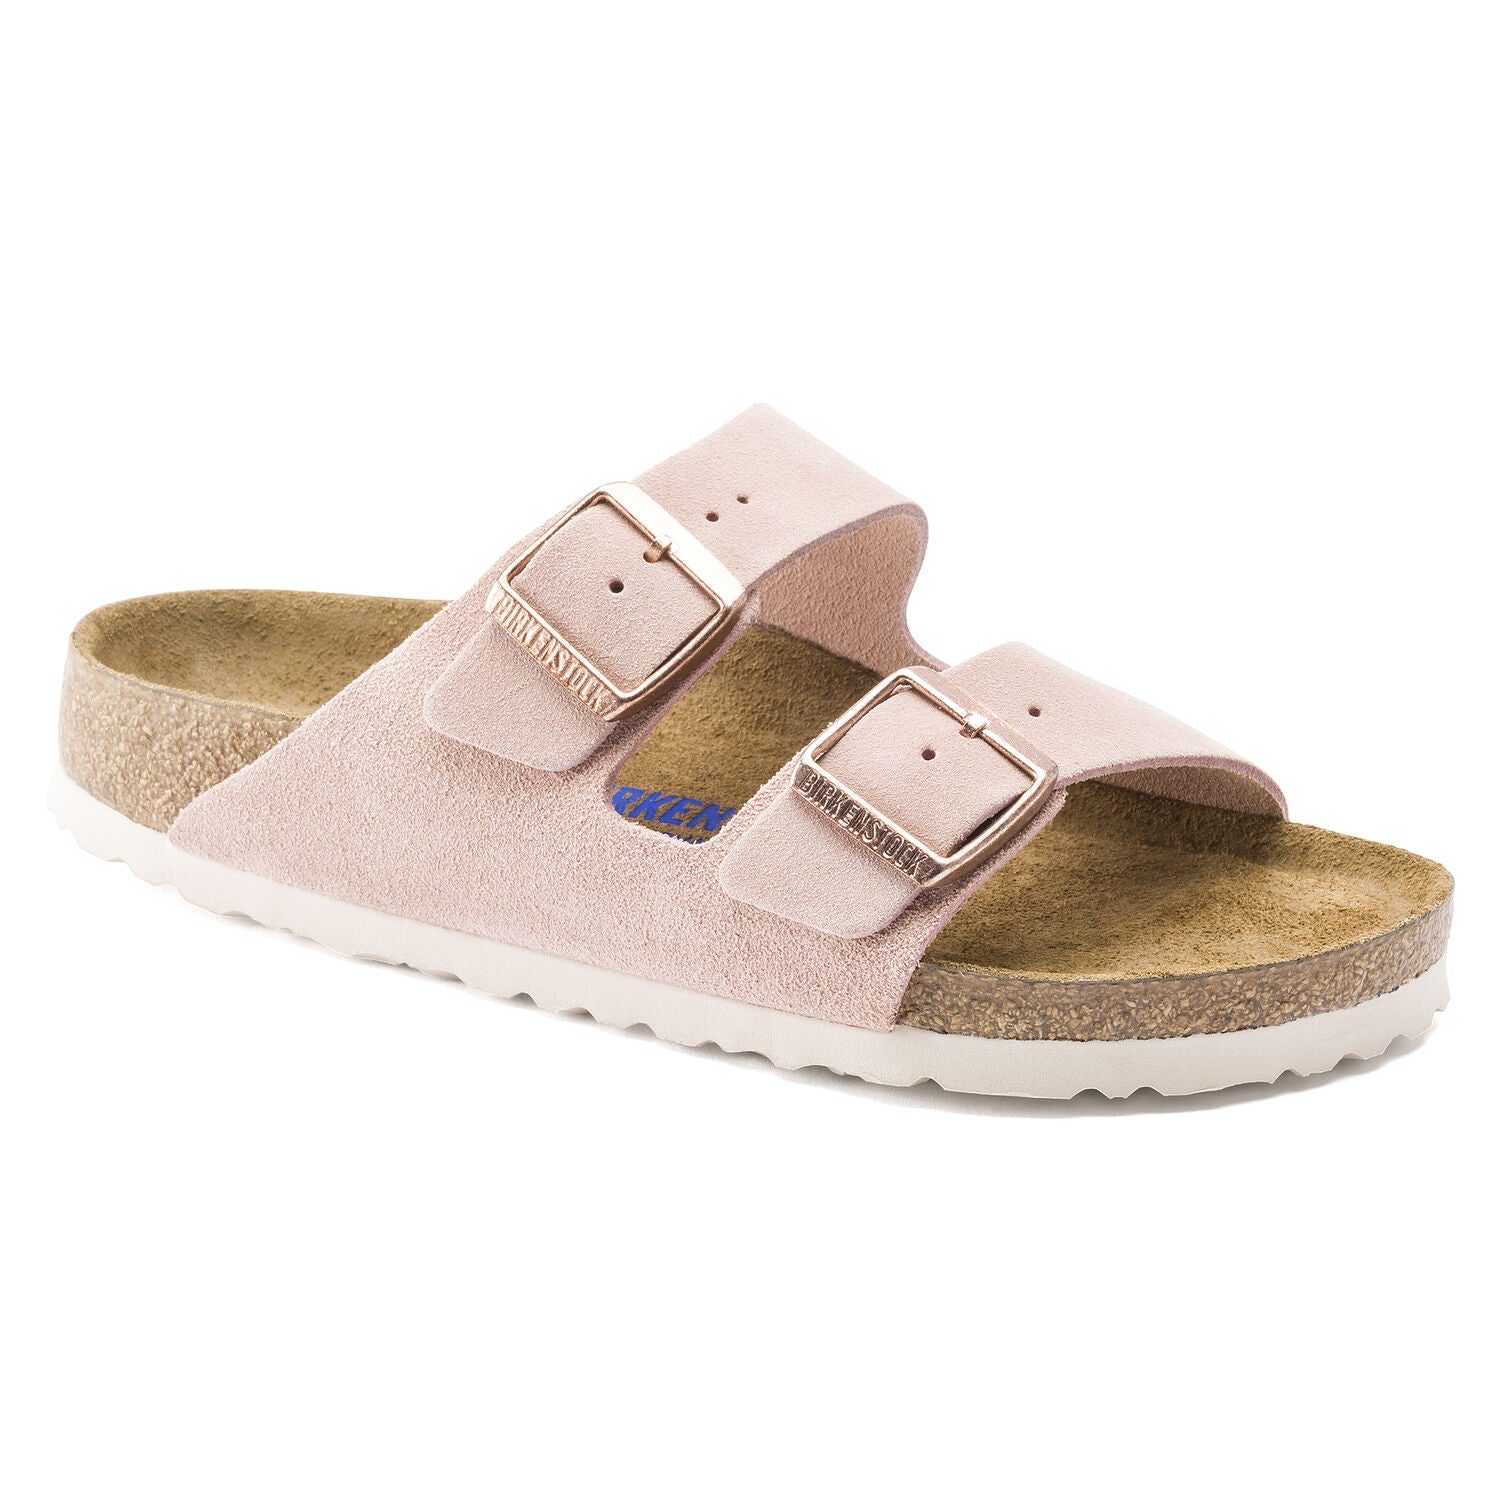 Birkenstock Arizona Soft Footbed Narrow Fit